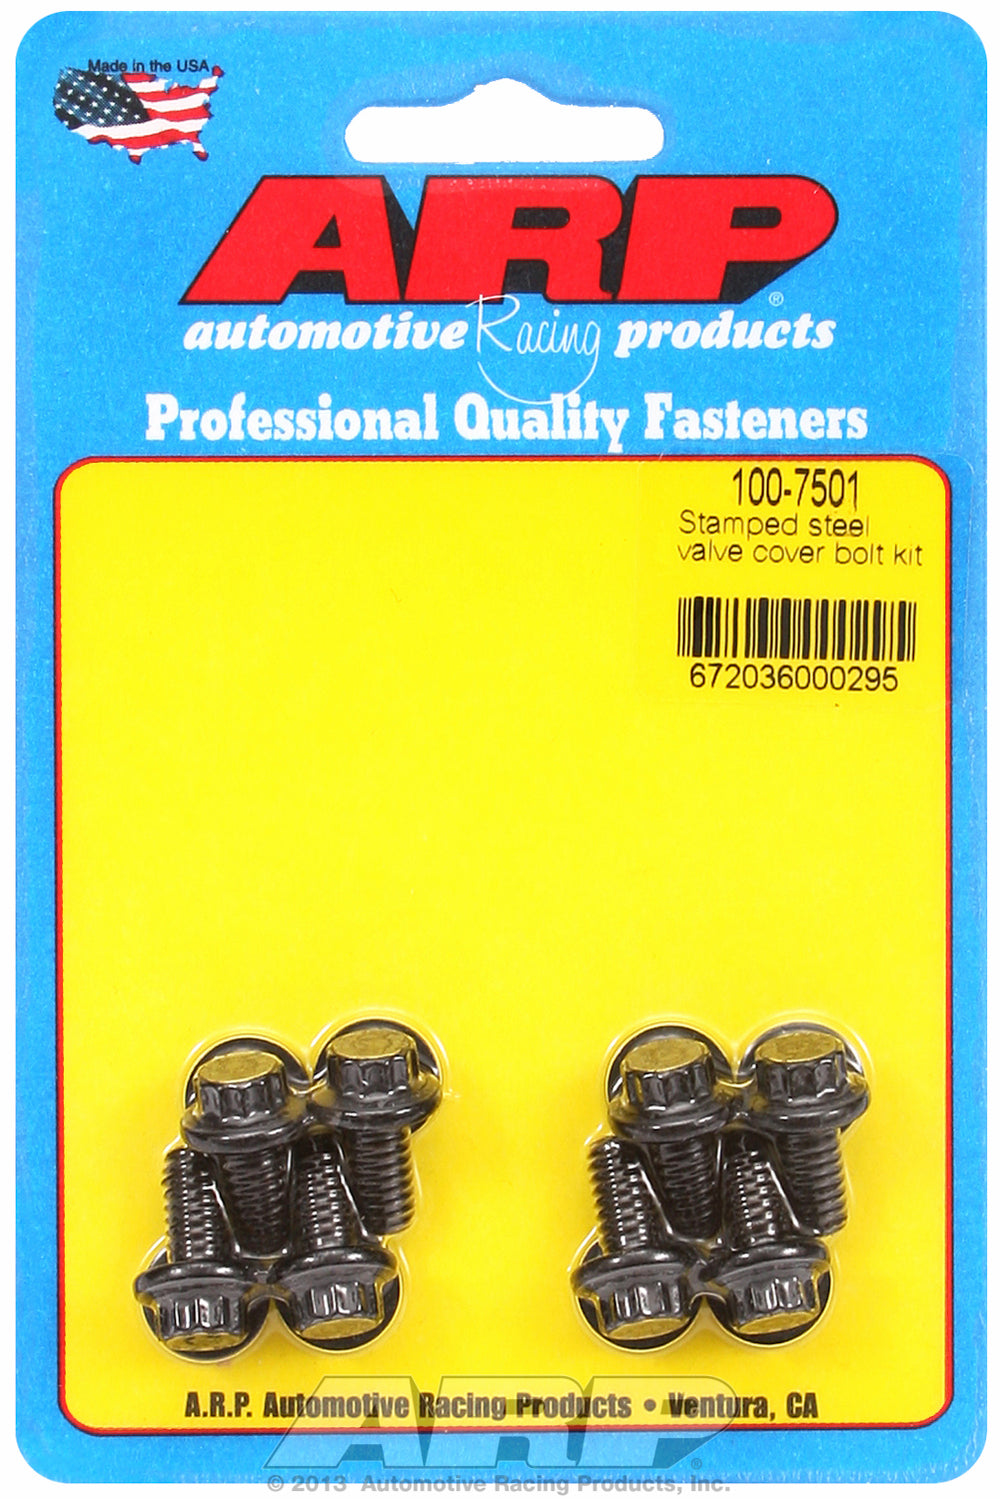 Valve Cover Bolt Kit for Stamped Steel Covers 1/4-20 thread, 0.515in UHL QTY: 8 12-pt Head